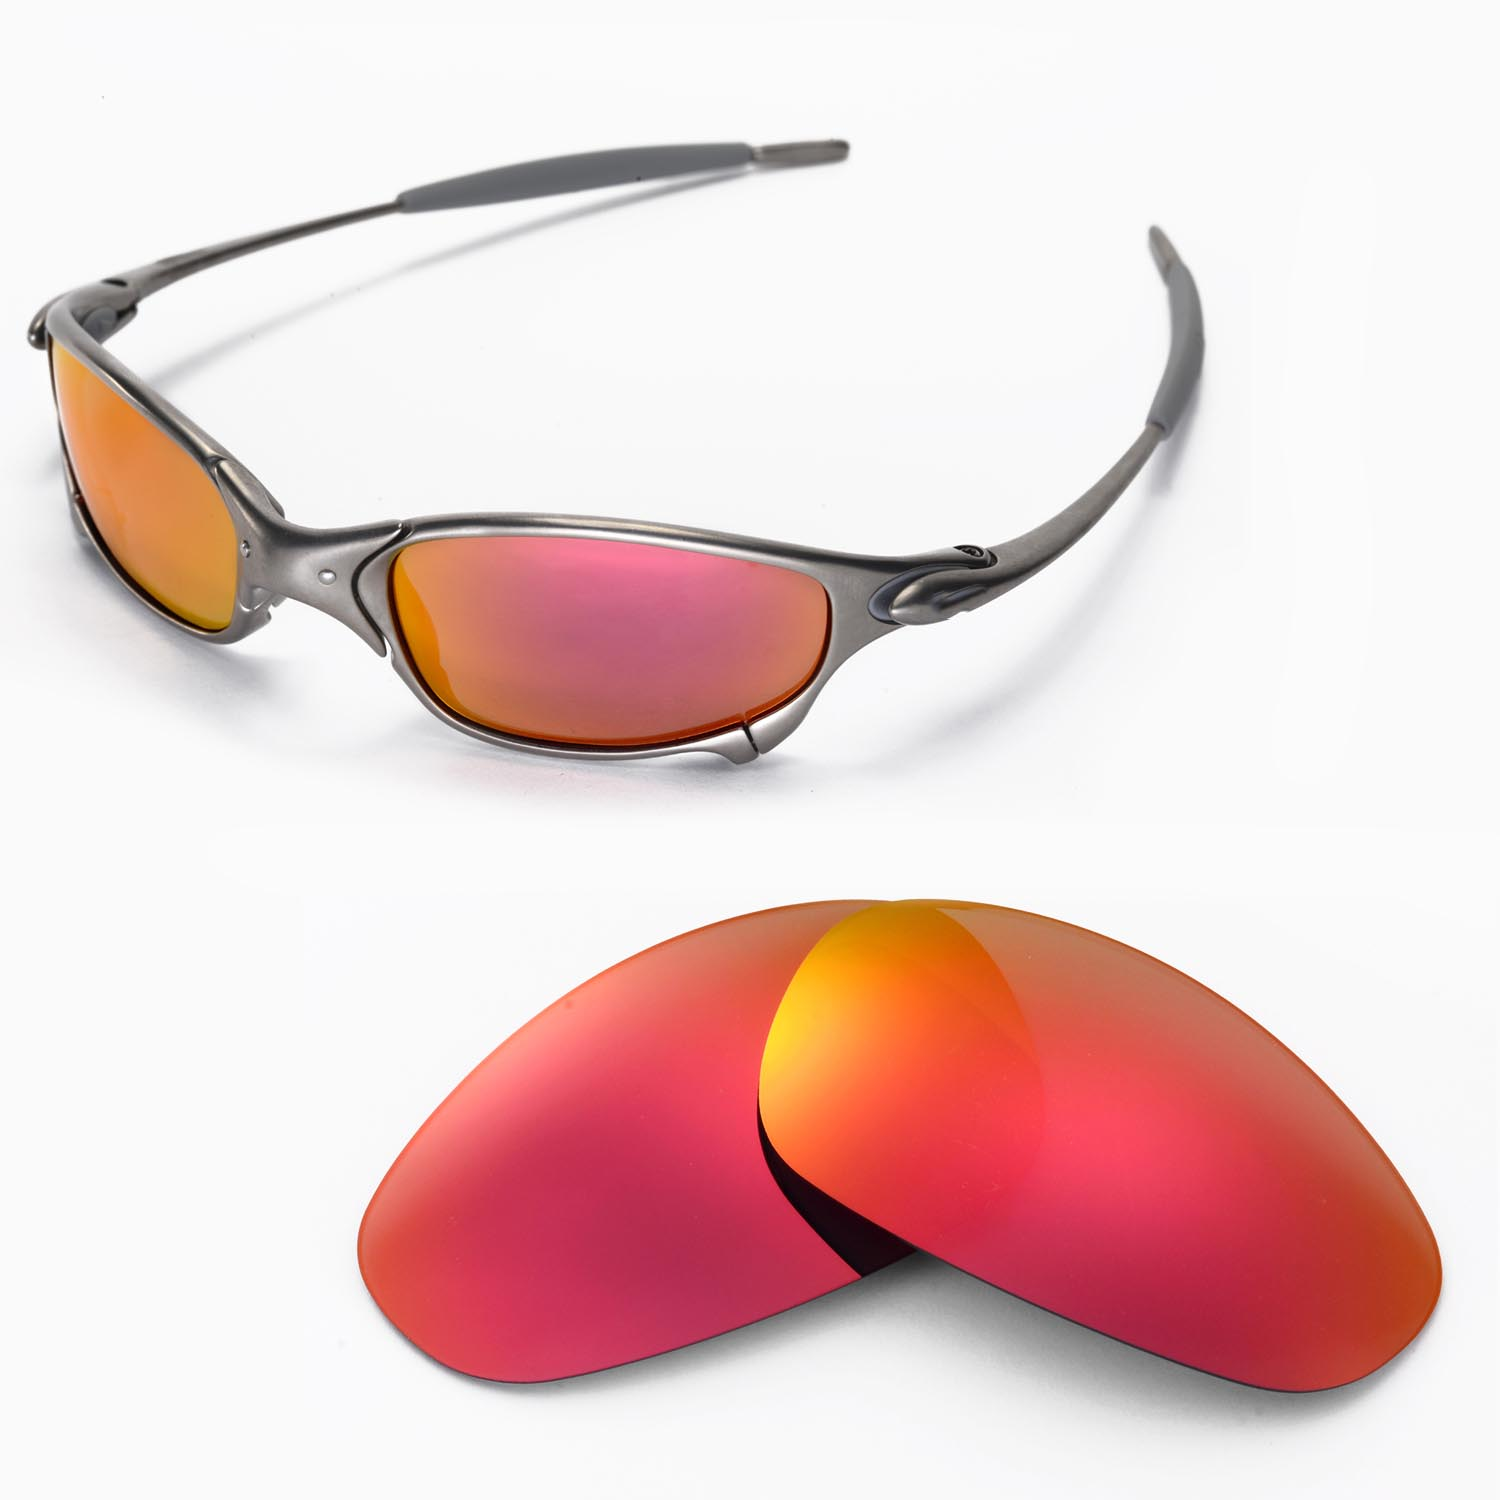 d289e7cdd1 Walleva Replacement Lenses For Oakley Juliet Sunglasses - Multiple Options  Auctions - Buy And ..